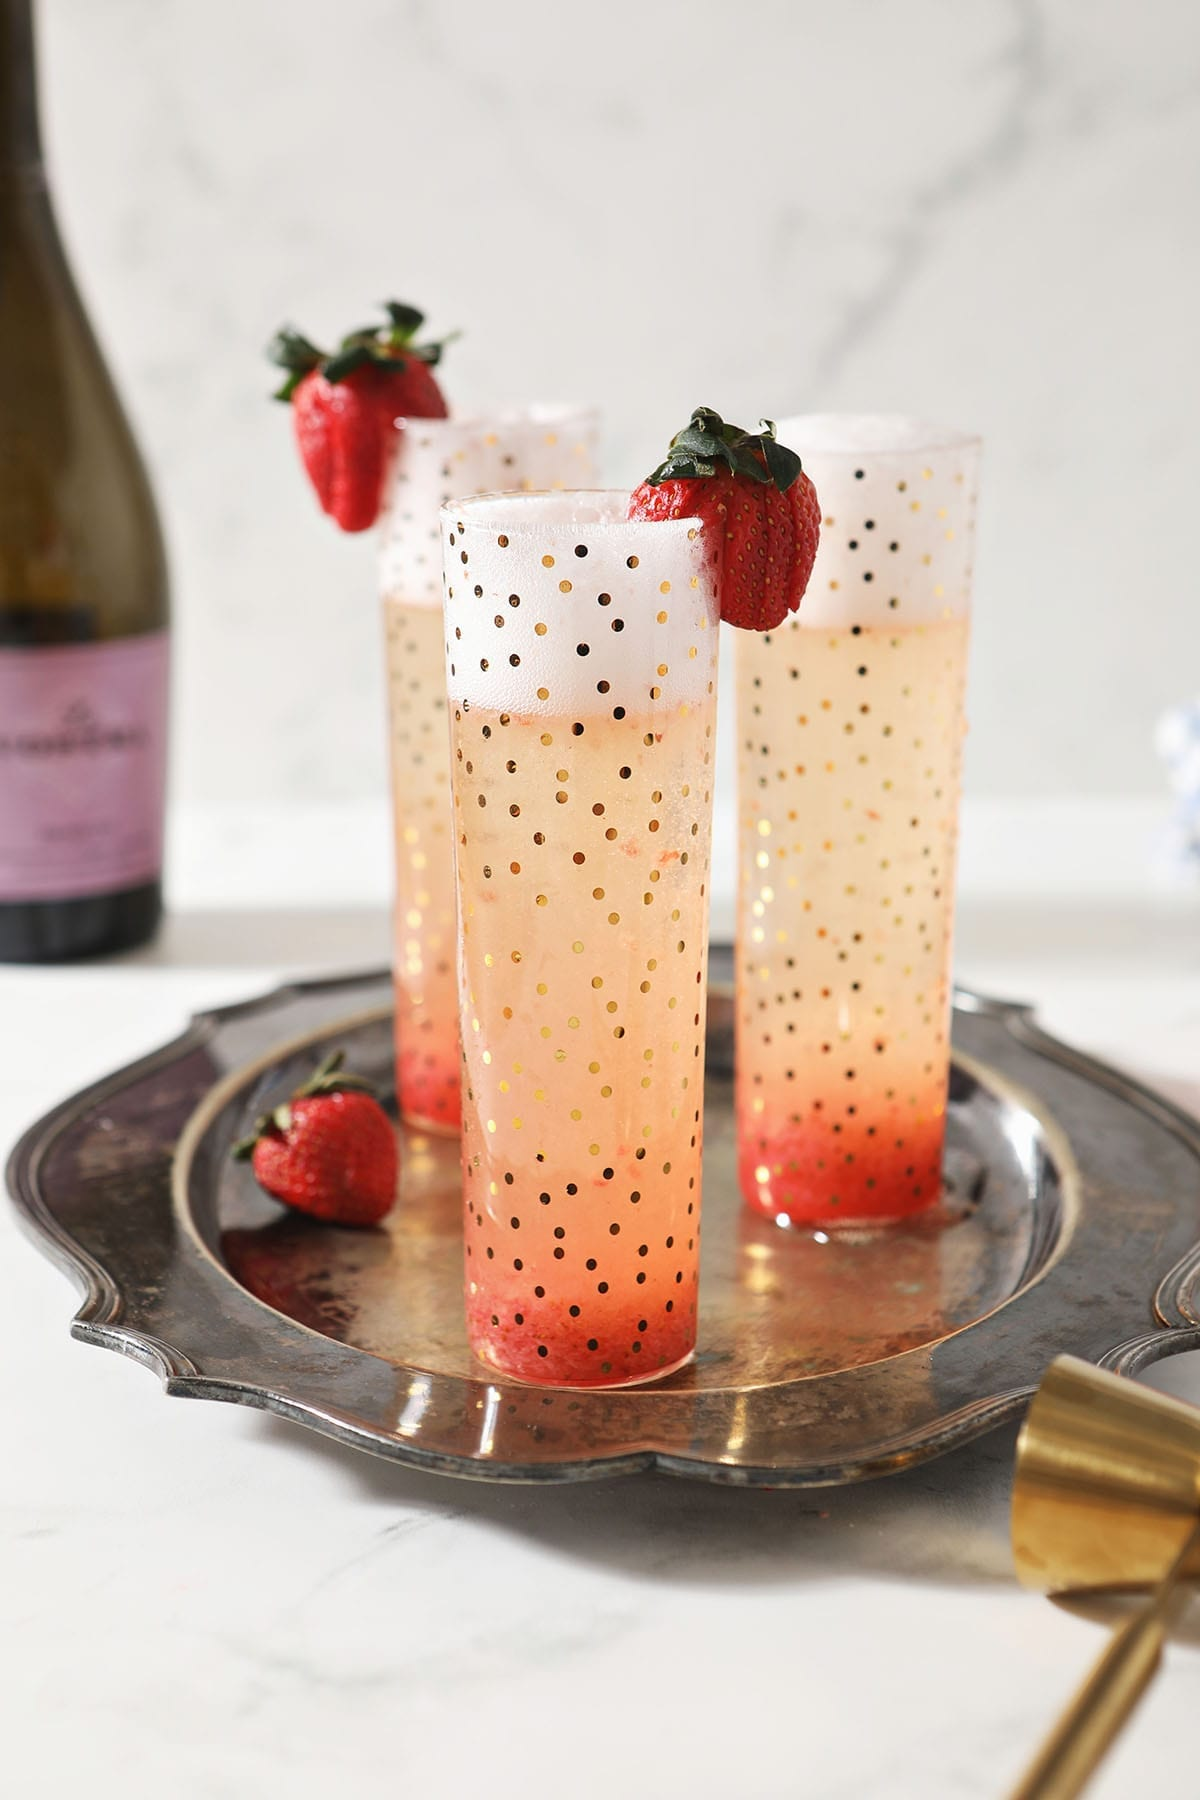 Three Strawberry Champagne Cocktails sit on a silver platter, garnished with fresh strawberries